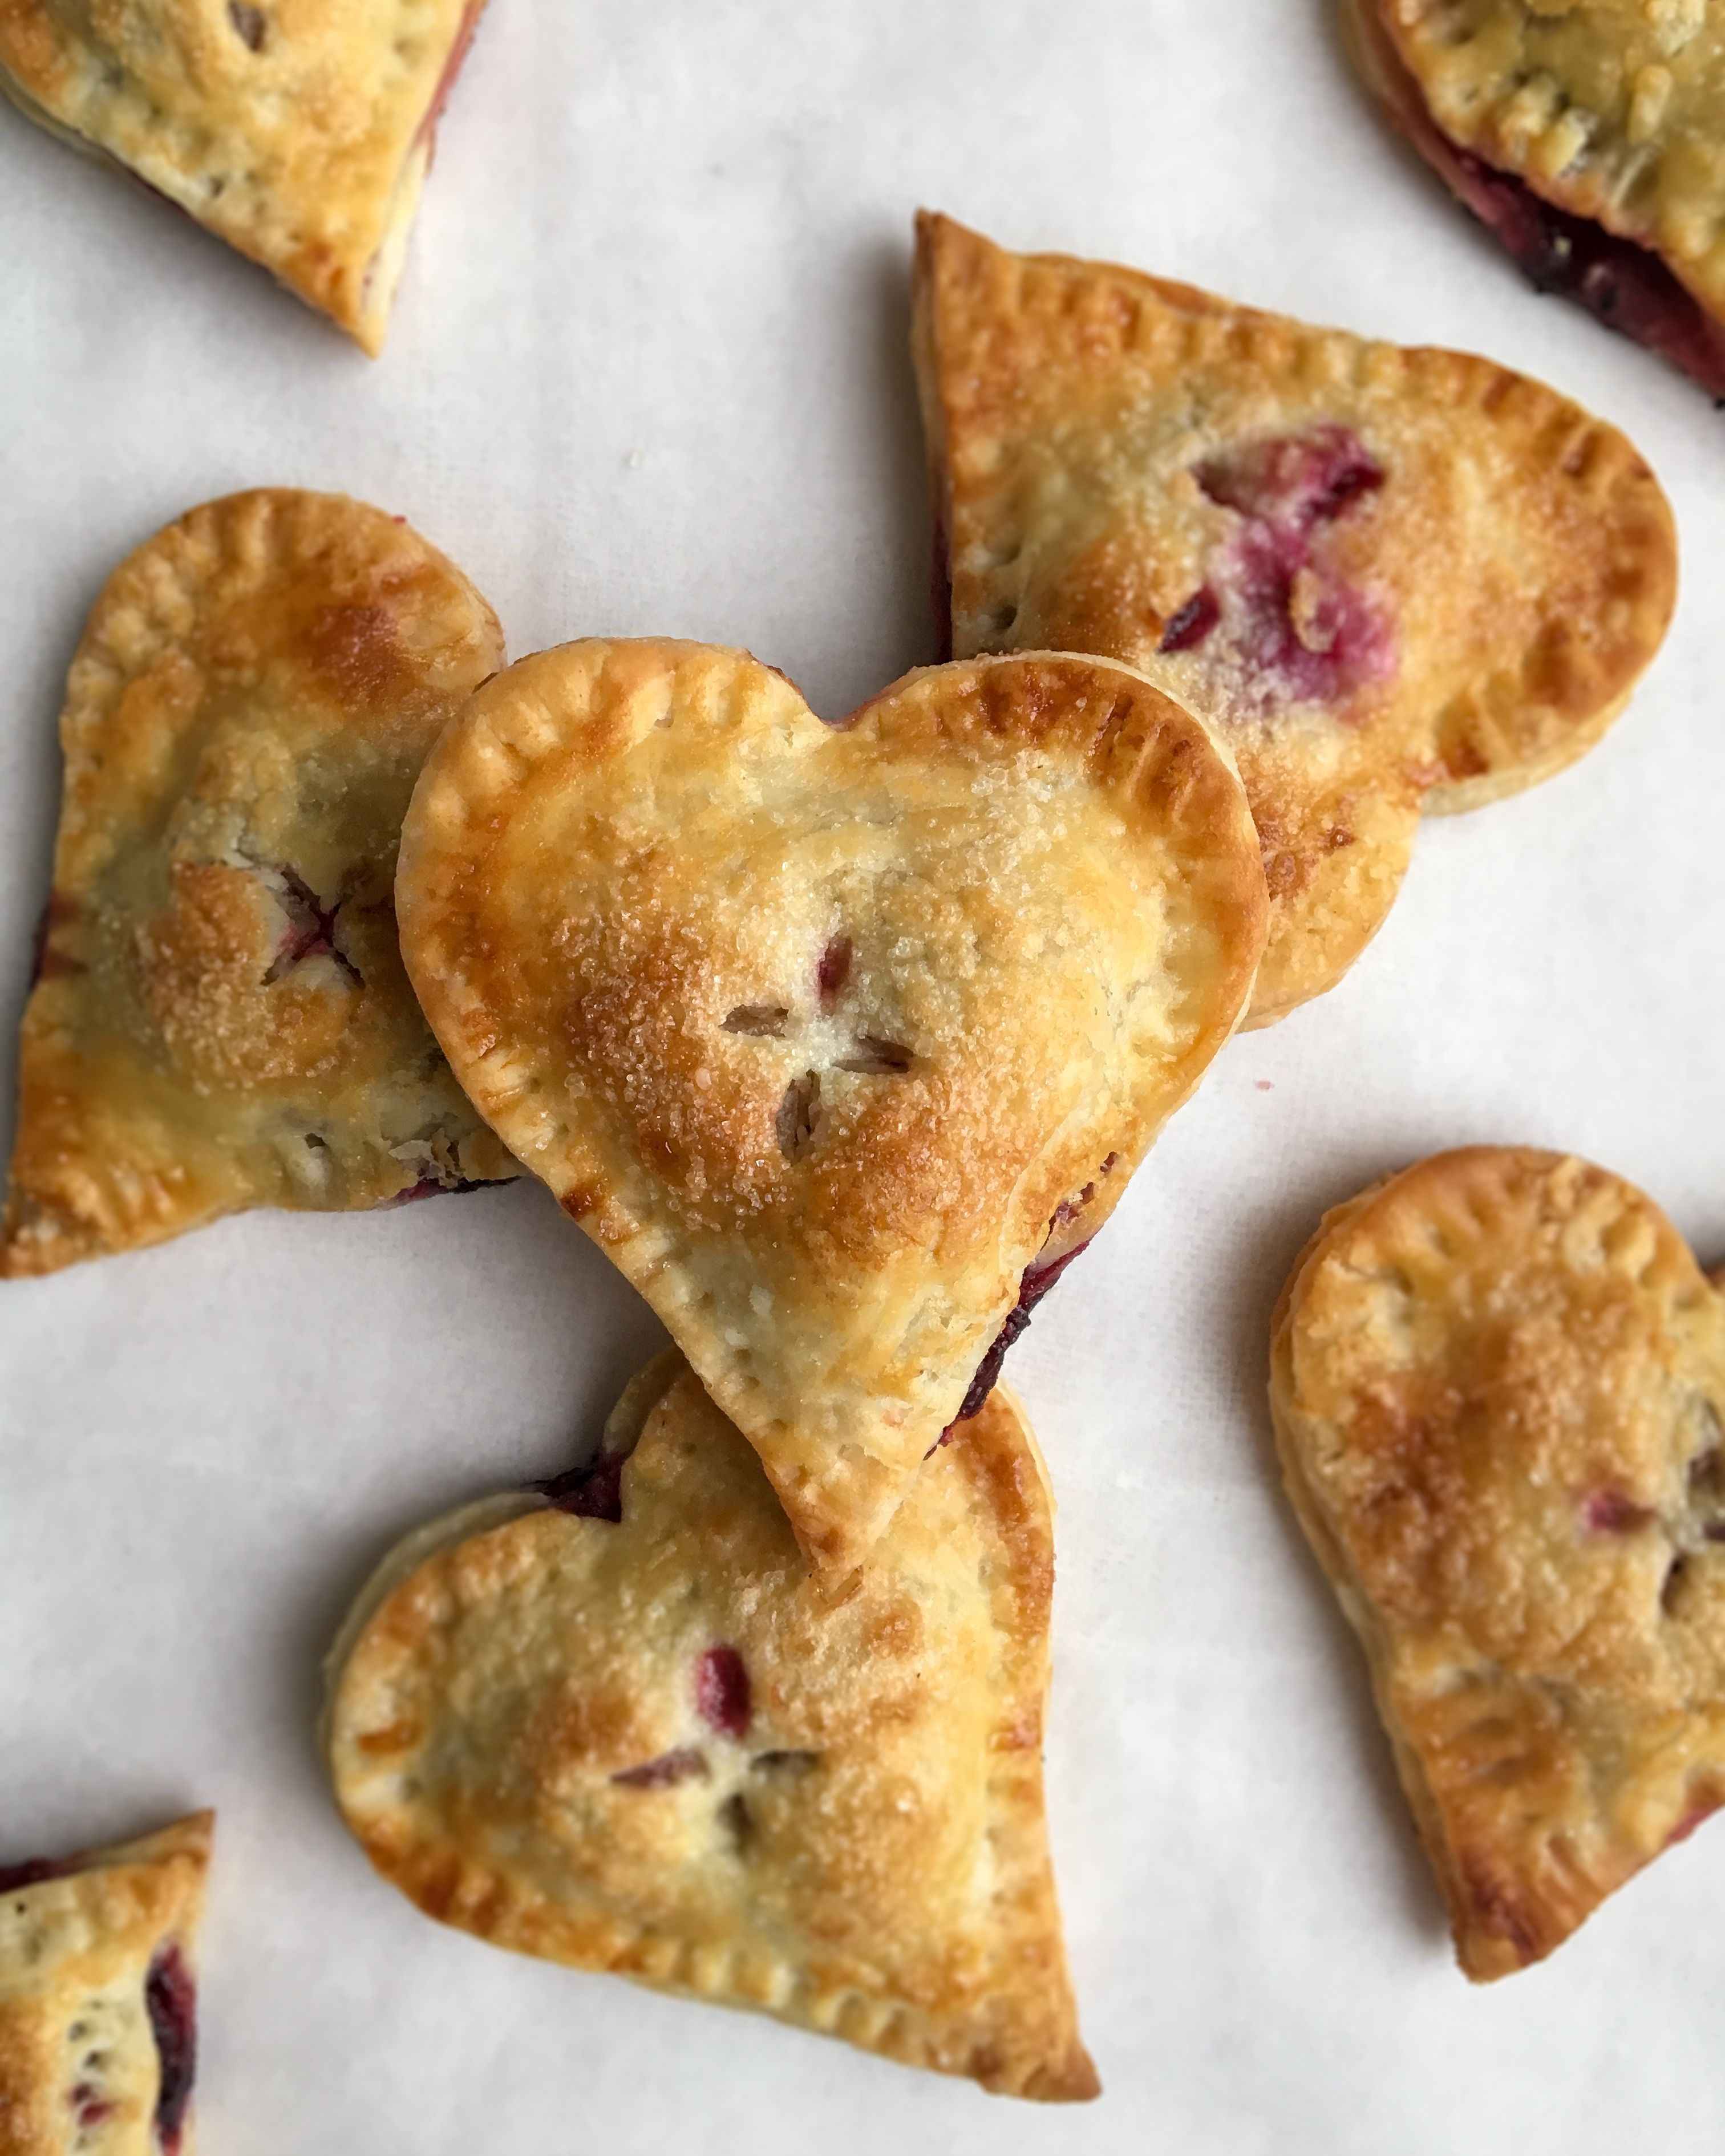 Heart Shaped Hand Pies with Blueberry and Strawberry Filling